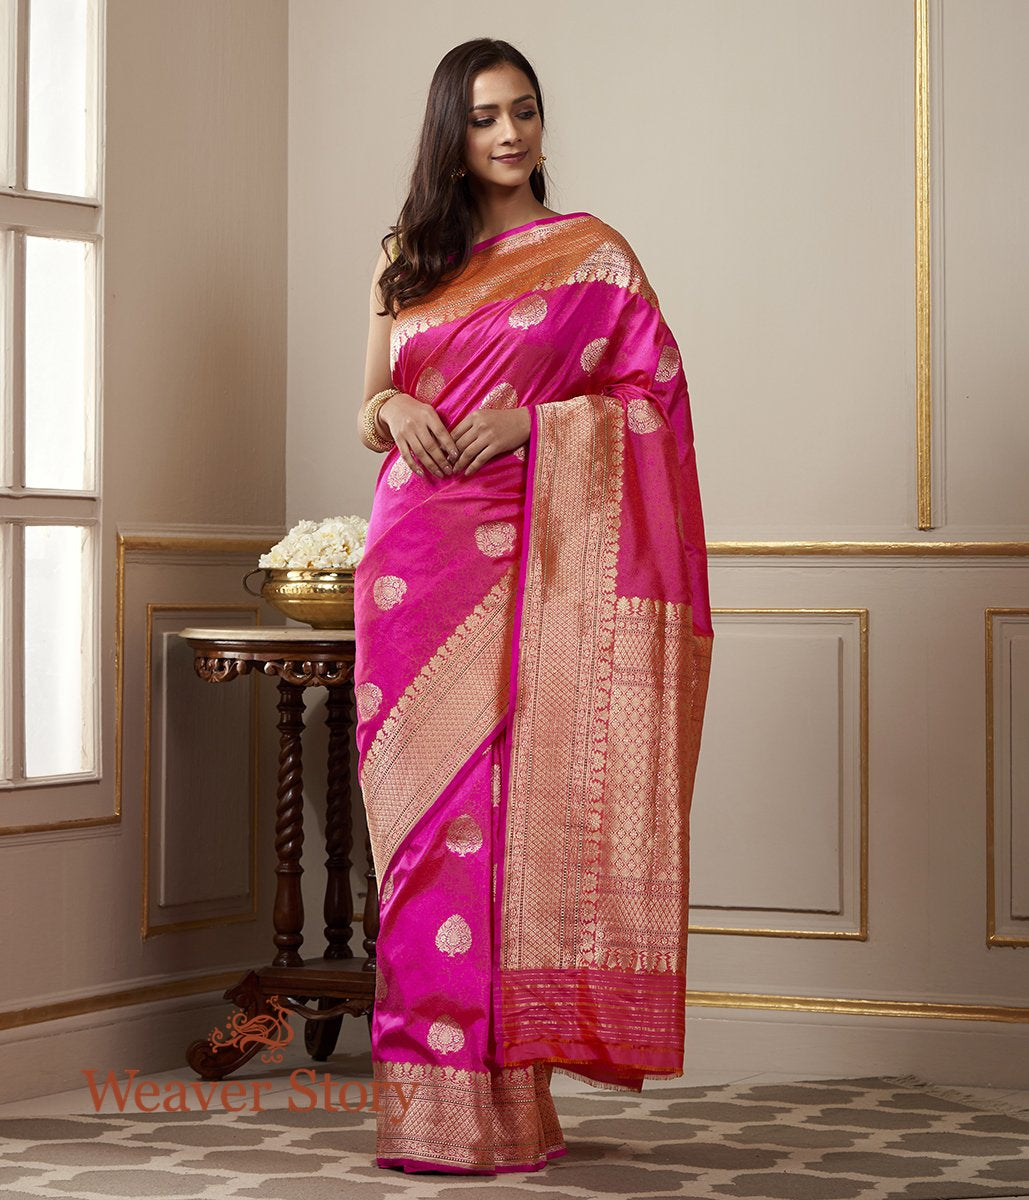 Handwoven Hot Pink Banarasi Tanchoi Saree with Kadhwa Booti